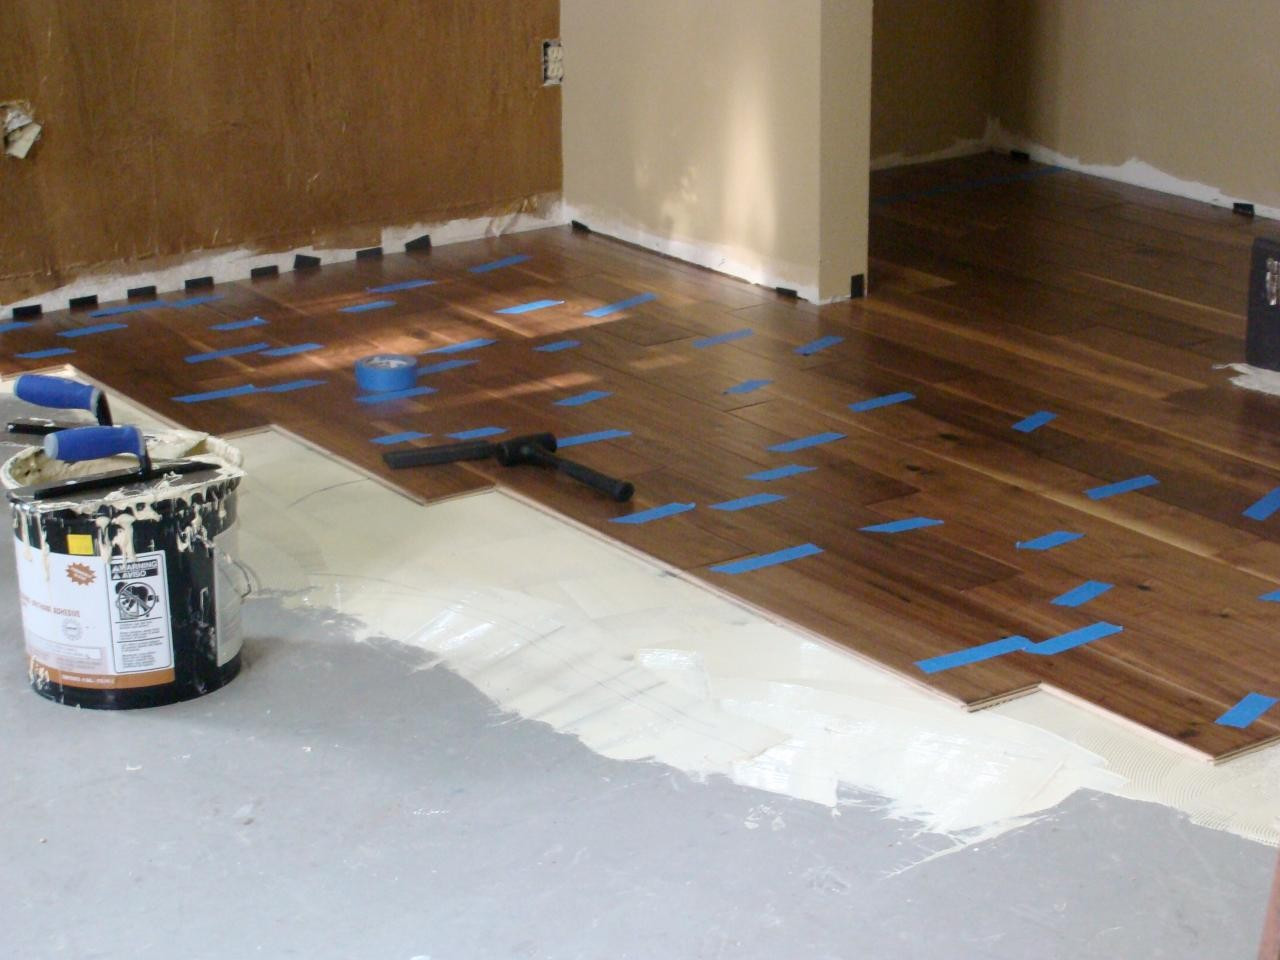 installing engineered hardwood flooring on concrete of 13 luxury homemade hardwood floor cleaner images dizpos com inside homemade hardwood floor cleaner inspirational installing hardwood flooring over concrete how tos gallery of 13 luxury